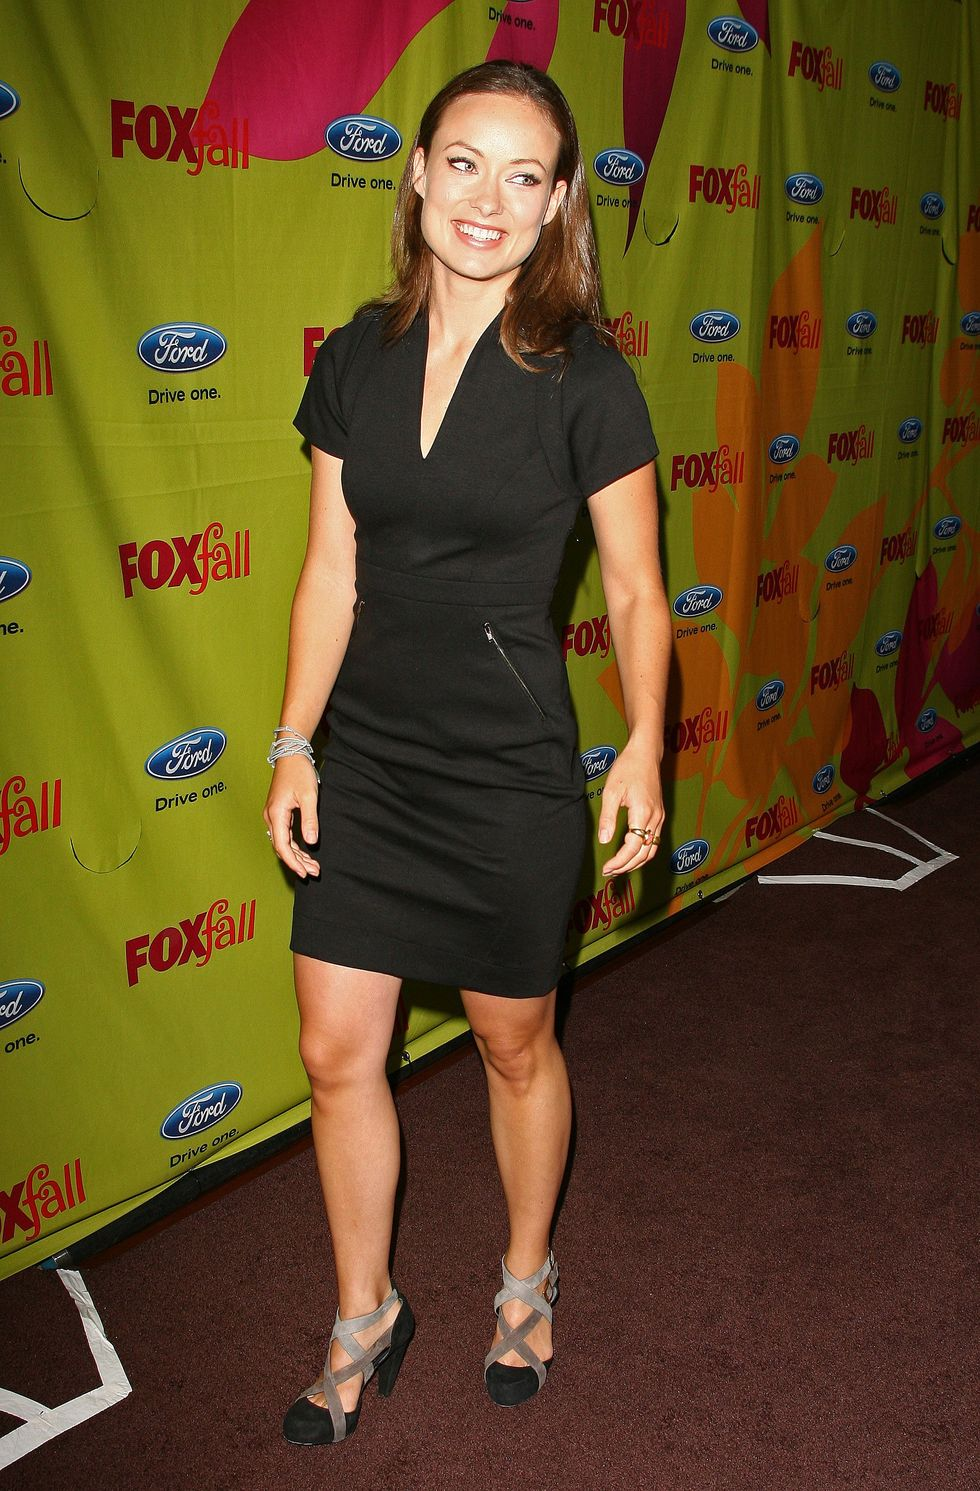 olivia-wilde-fox-tvs-fall-eco-casino-party-in-west-hollywood-01